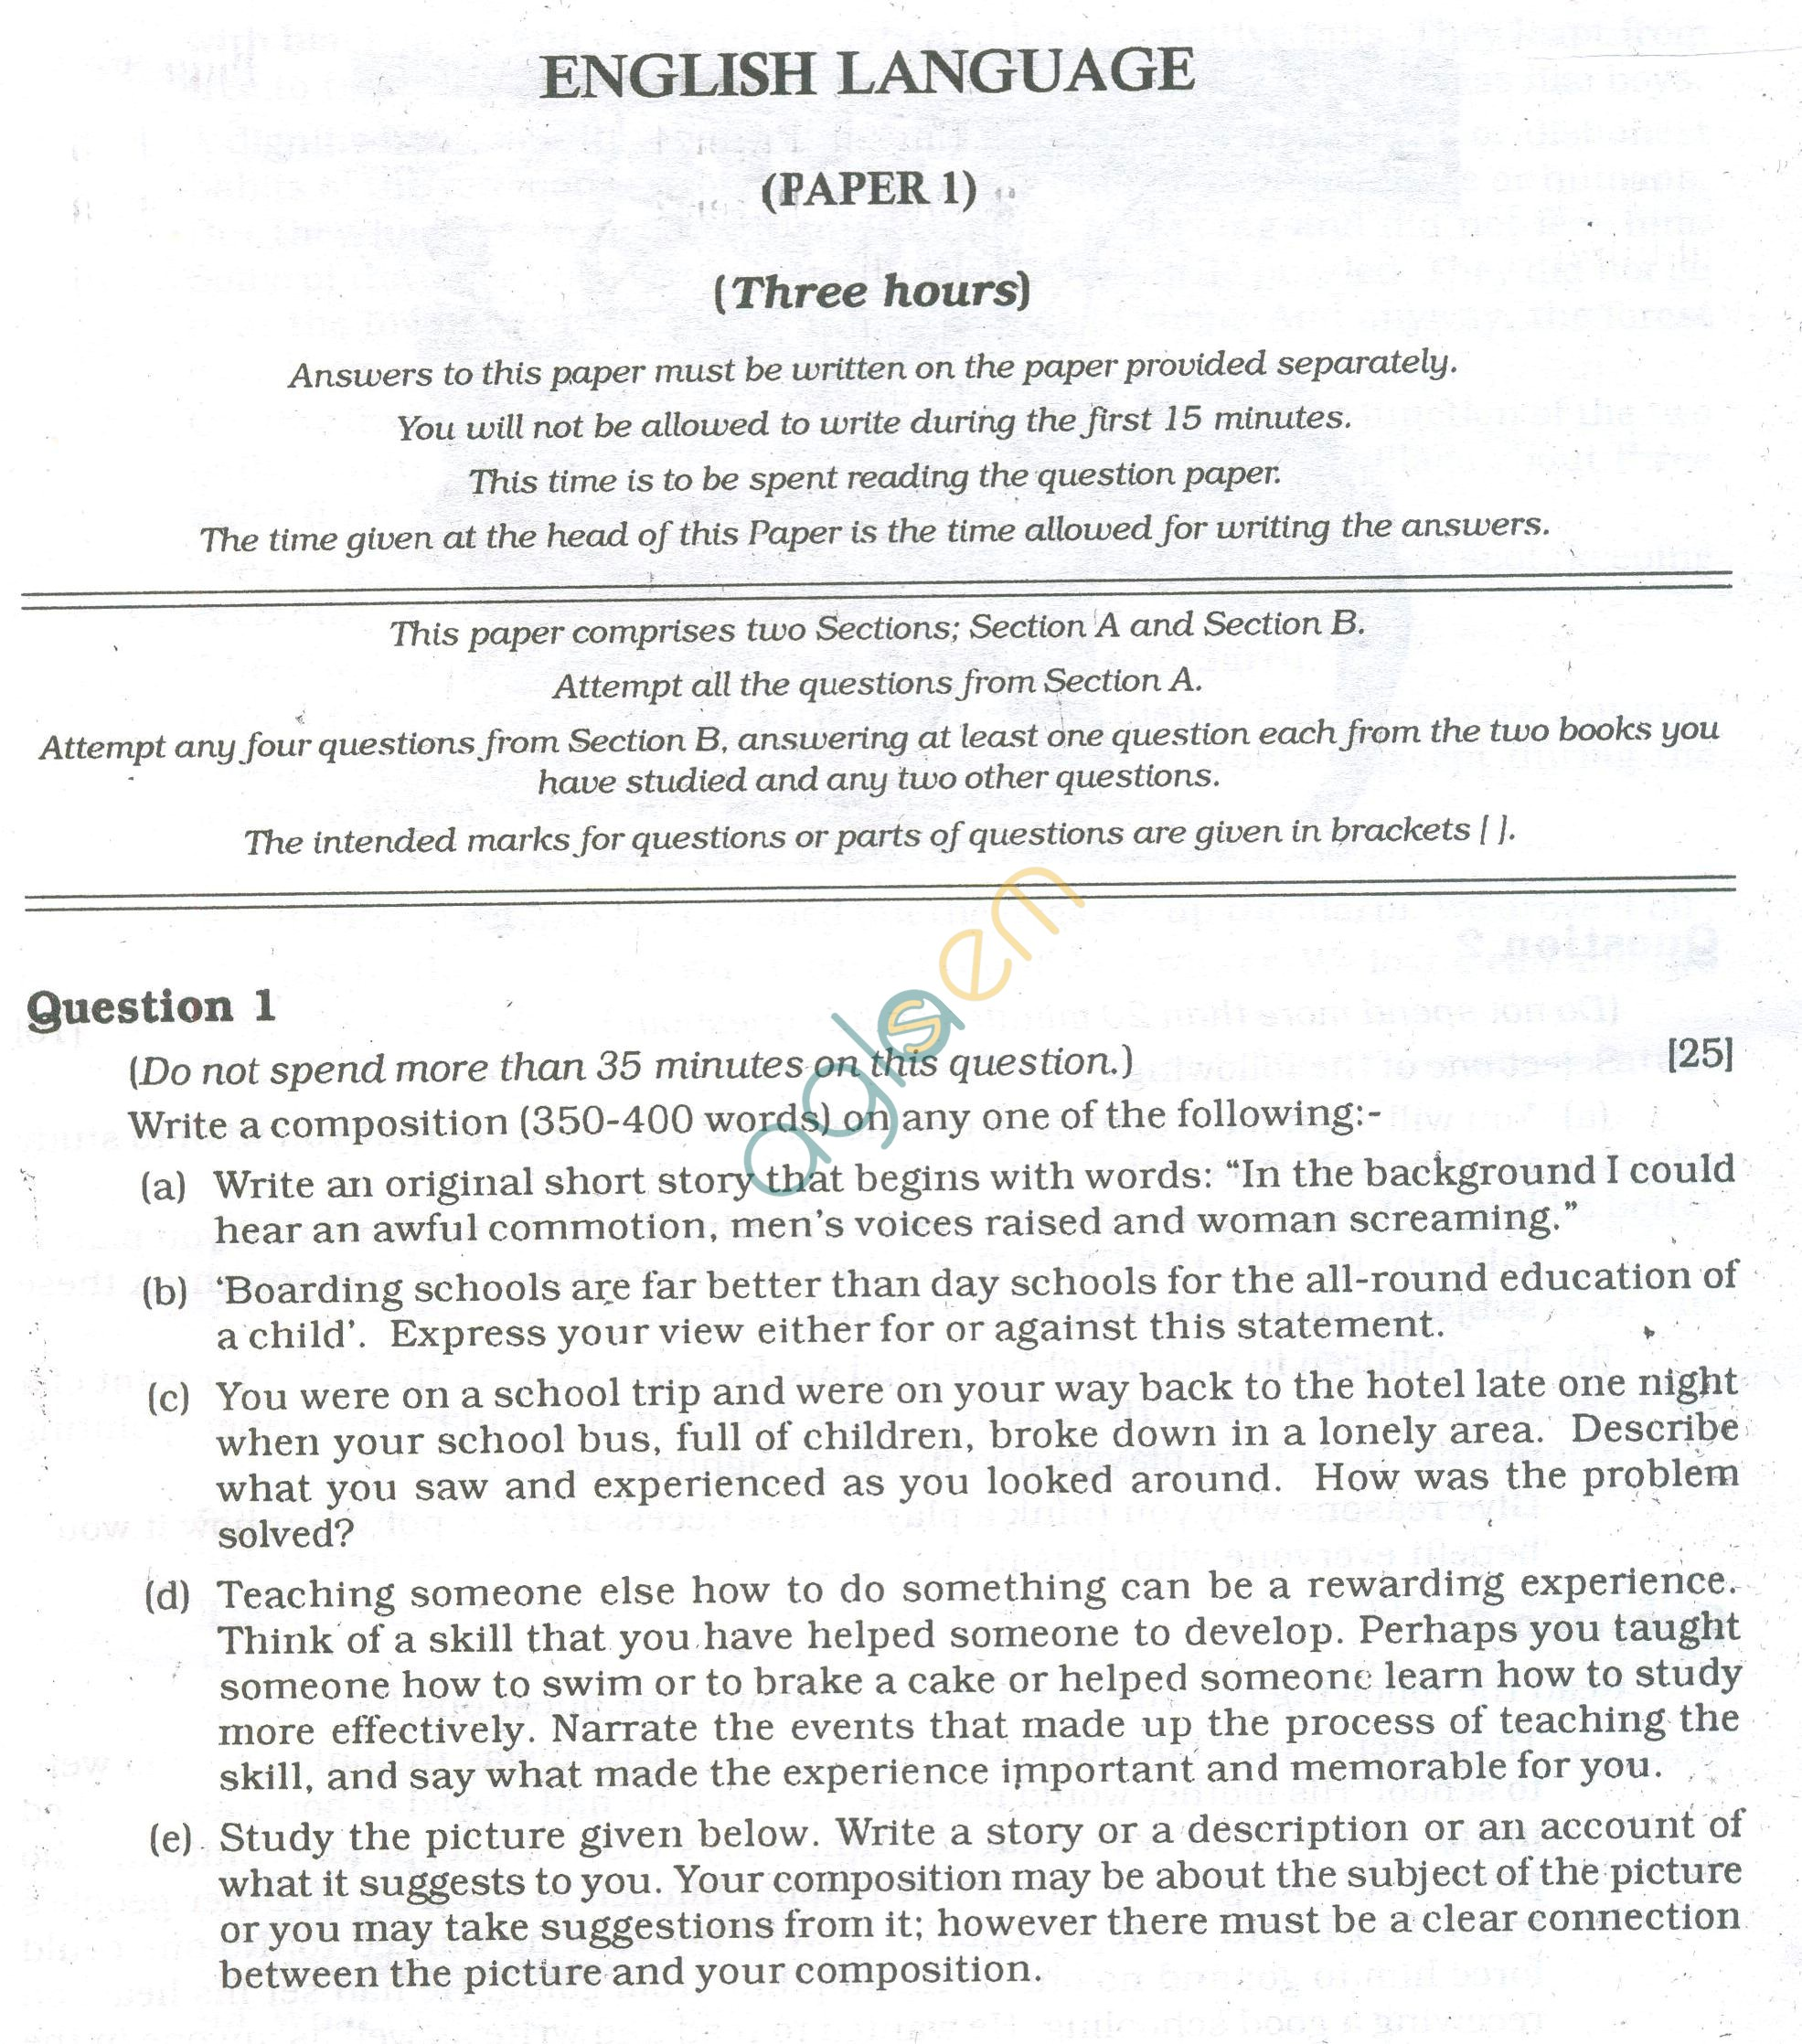 ICSE Question Papers 2013 for Class 10 - English Paper - 1